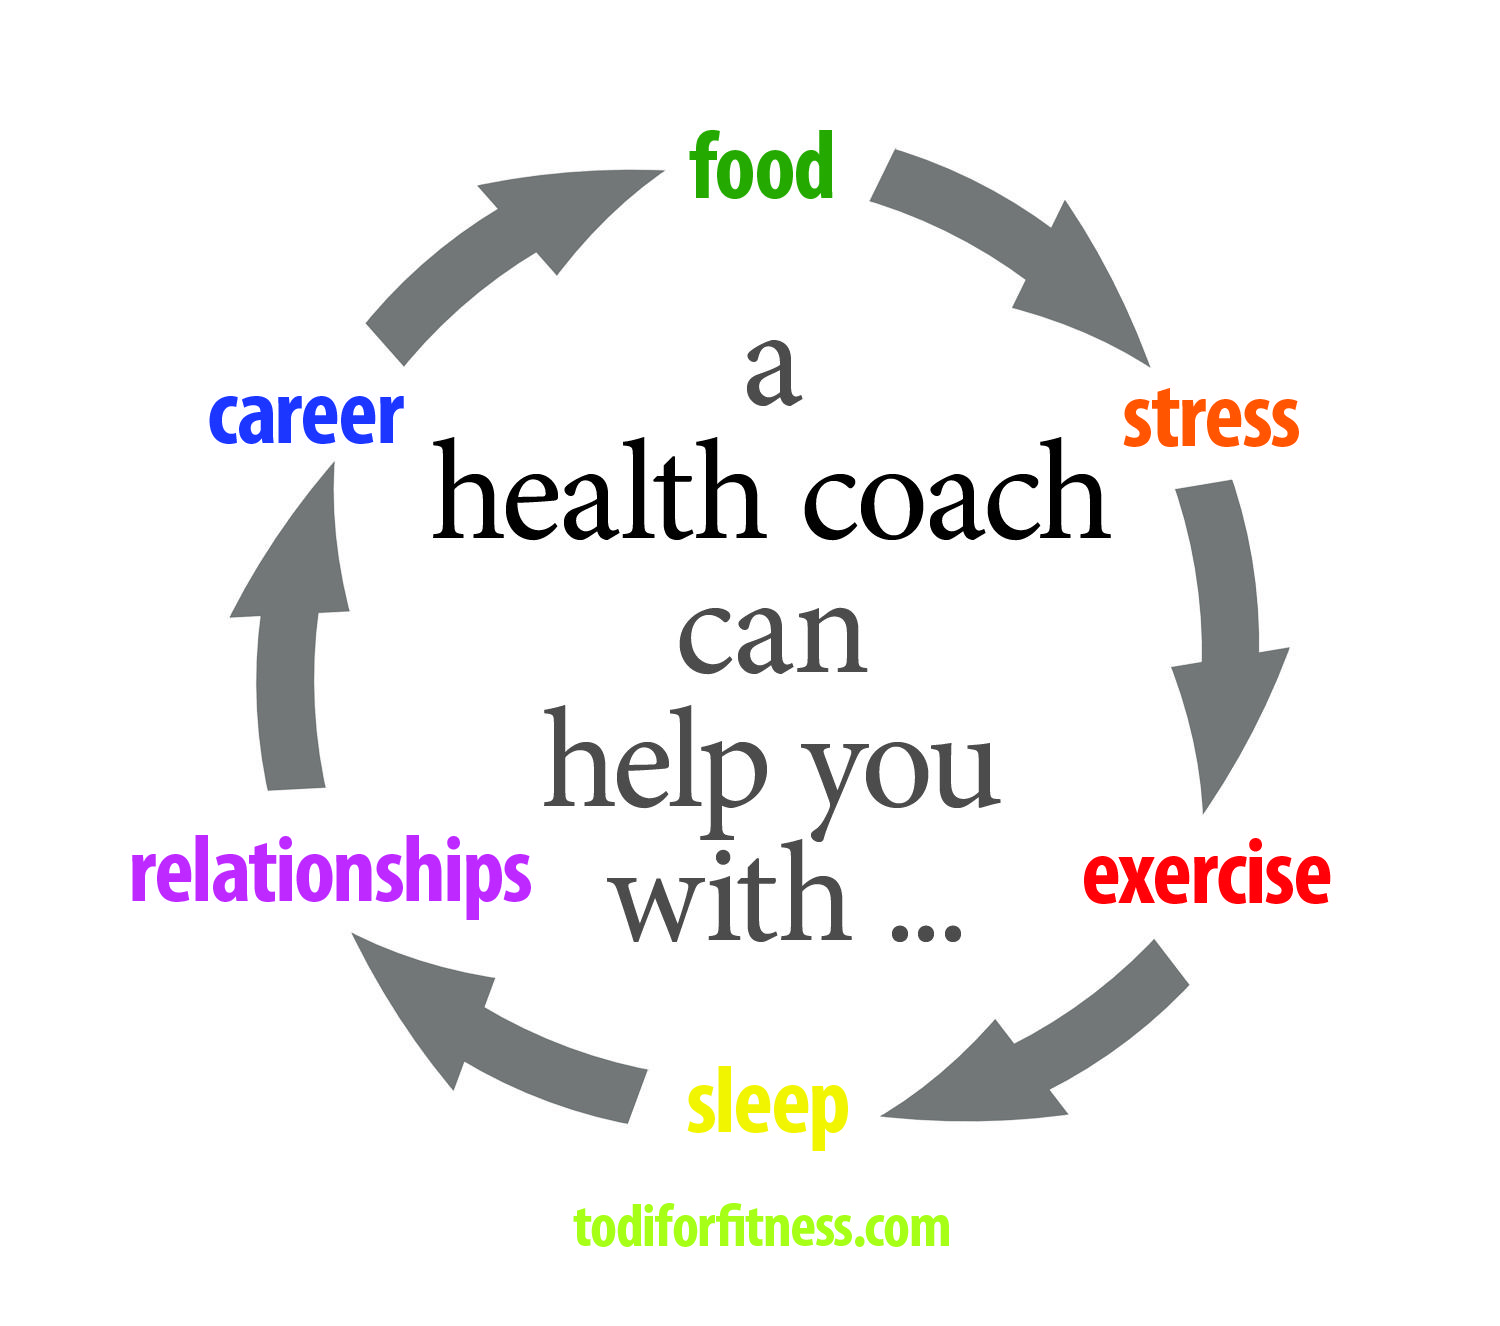 Health is much more than just food and exercise. A Health Coach can ...